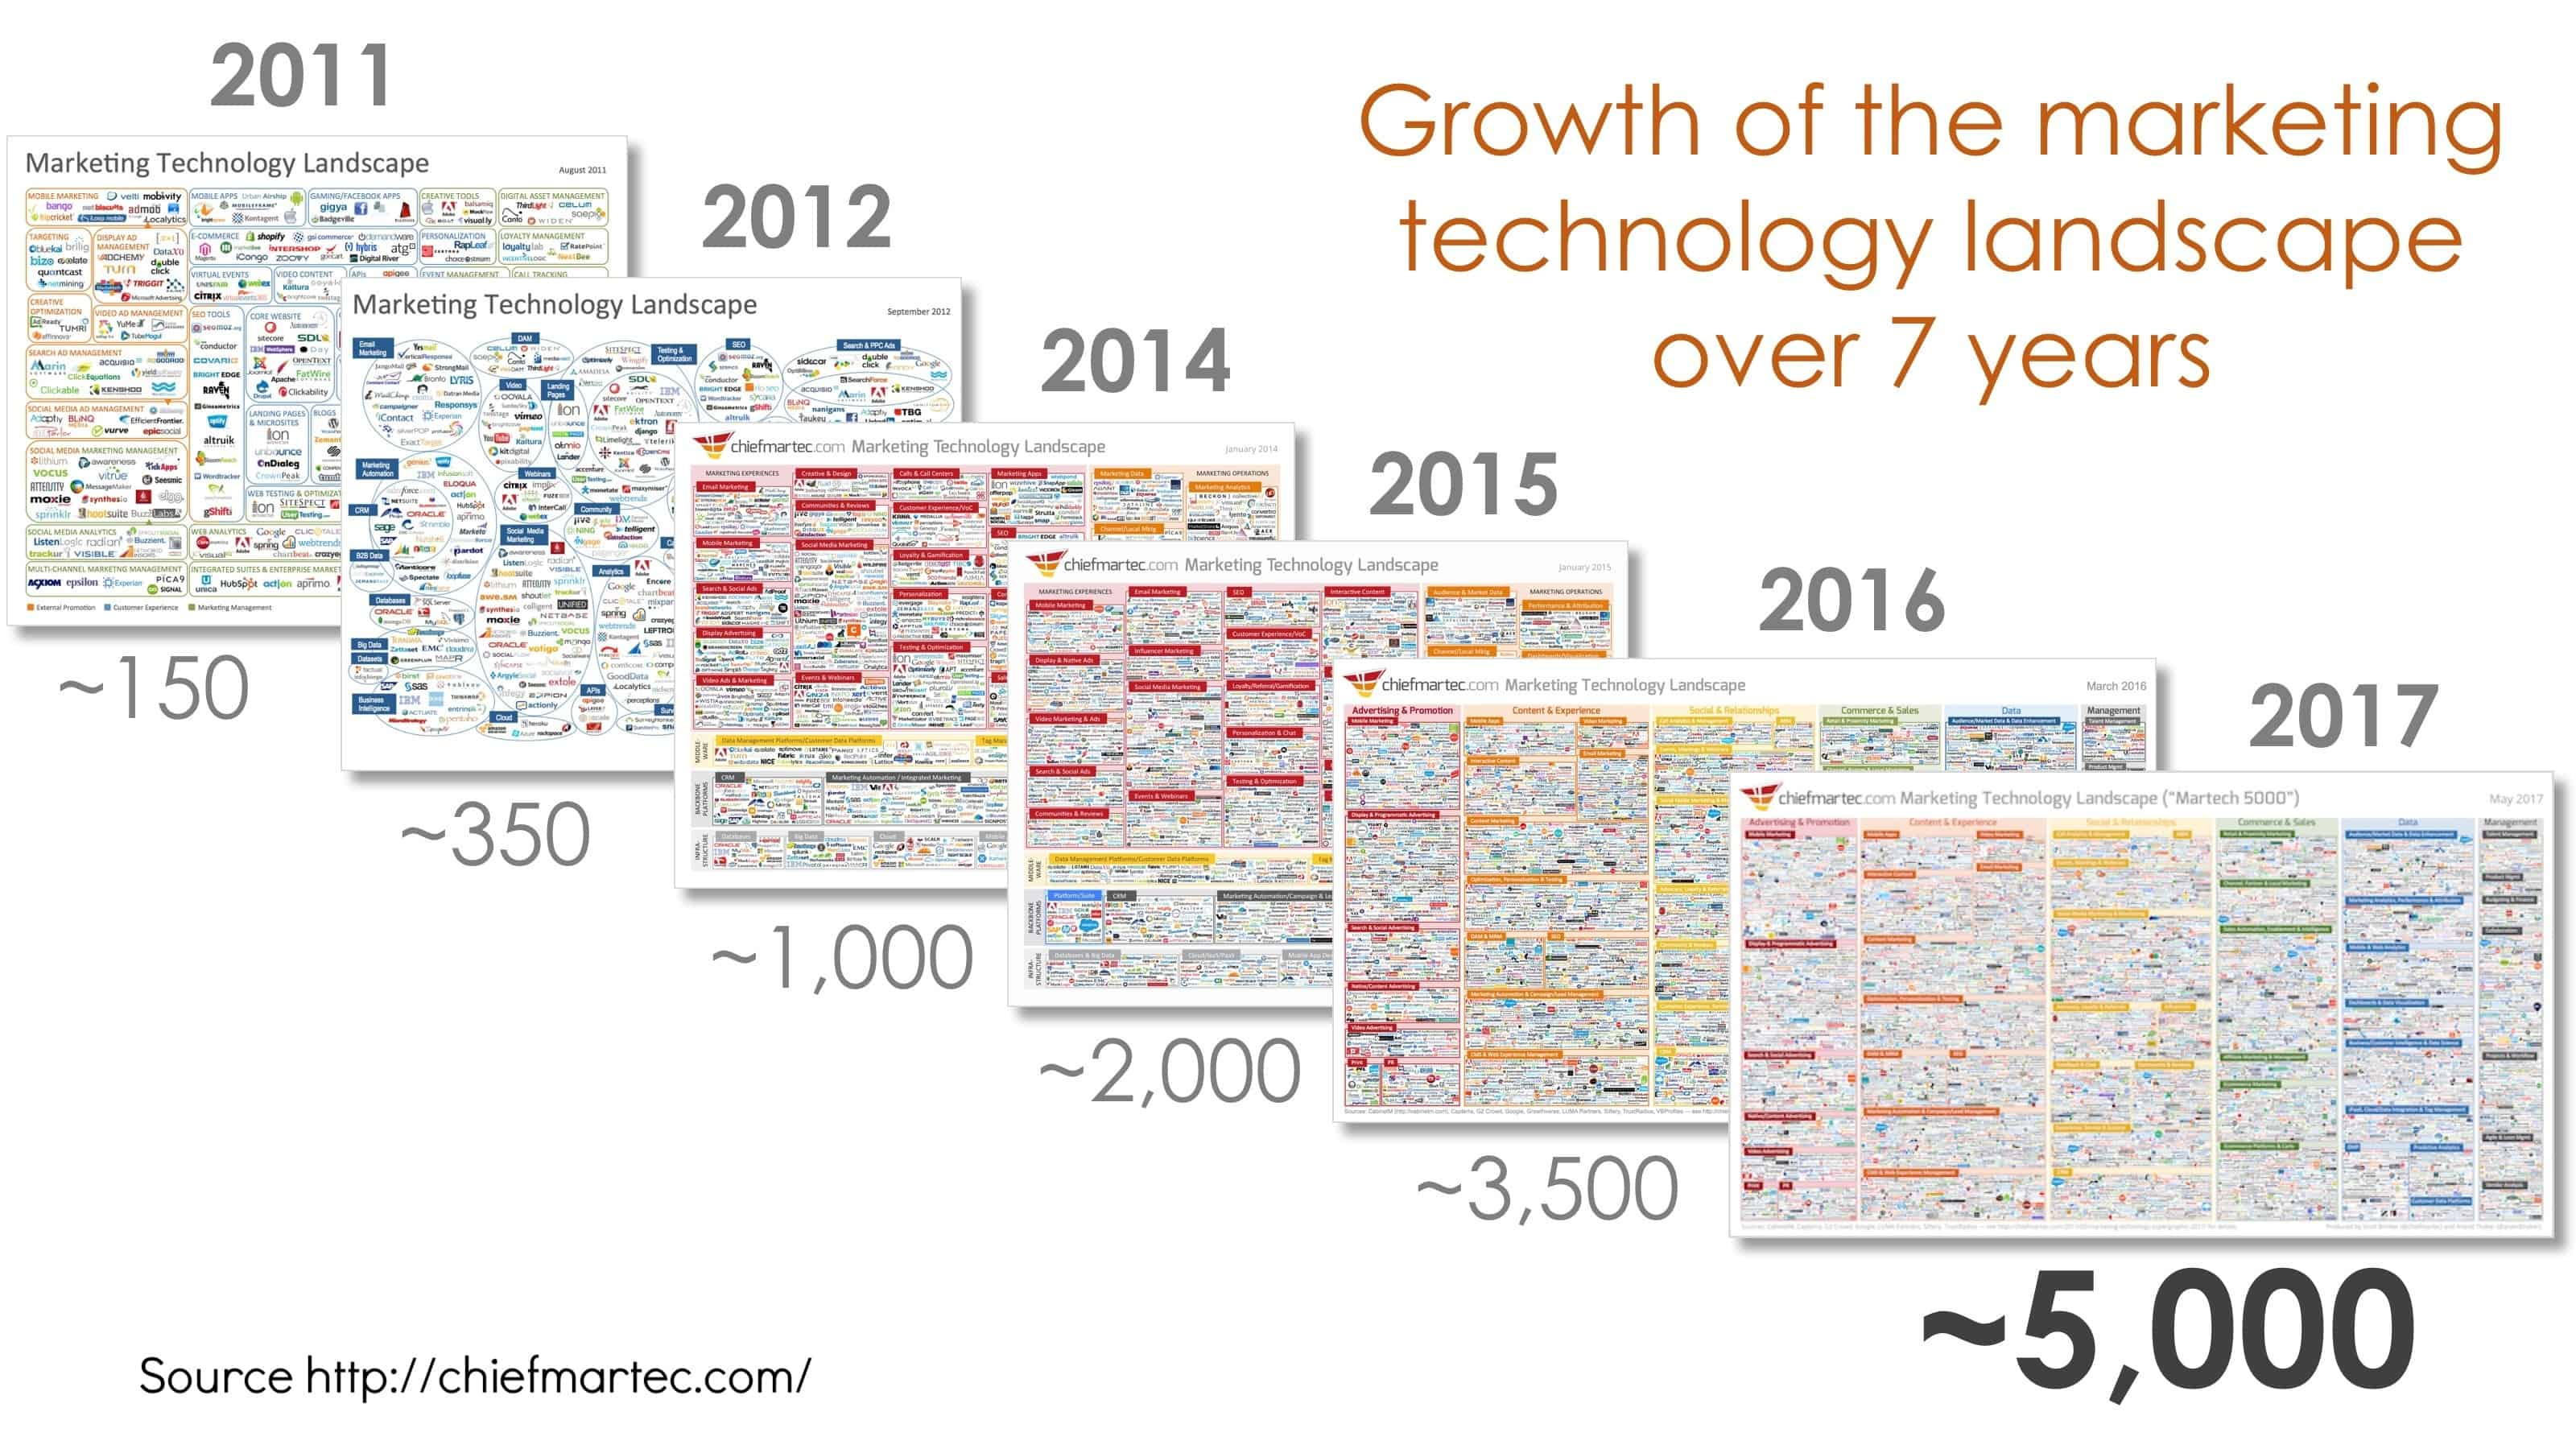 martech_landscape_over_7_years-258528-edited.jpg